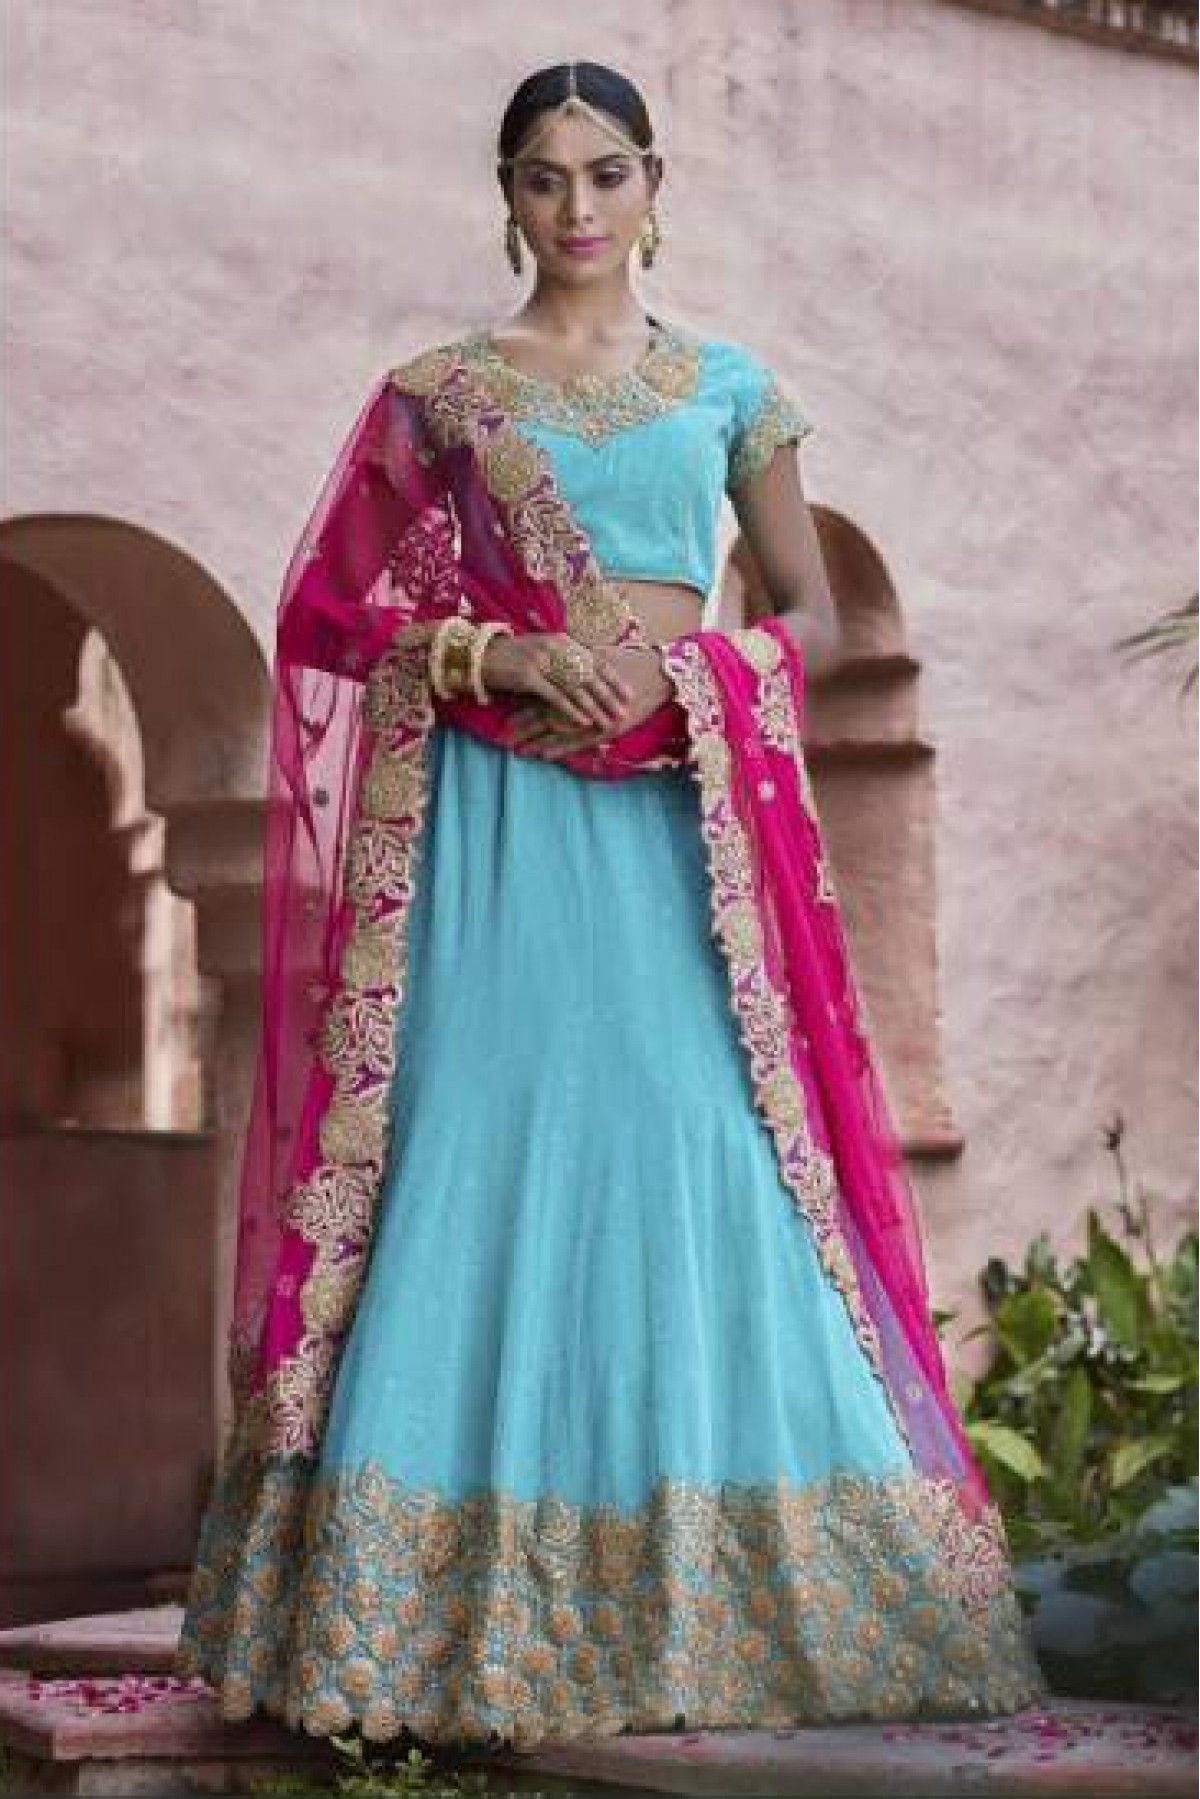 4f9406b5d0 Sky Blue and Pink Colour Georgette and Net Fabric Designer A Line Lehenga  Choli Comes With Matching Blouse and Dupatta. This Lehenga Choli Is Crafted  With ...